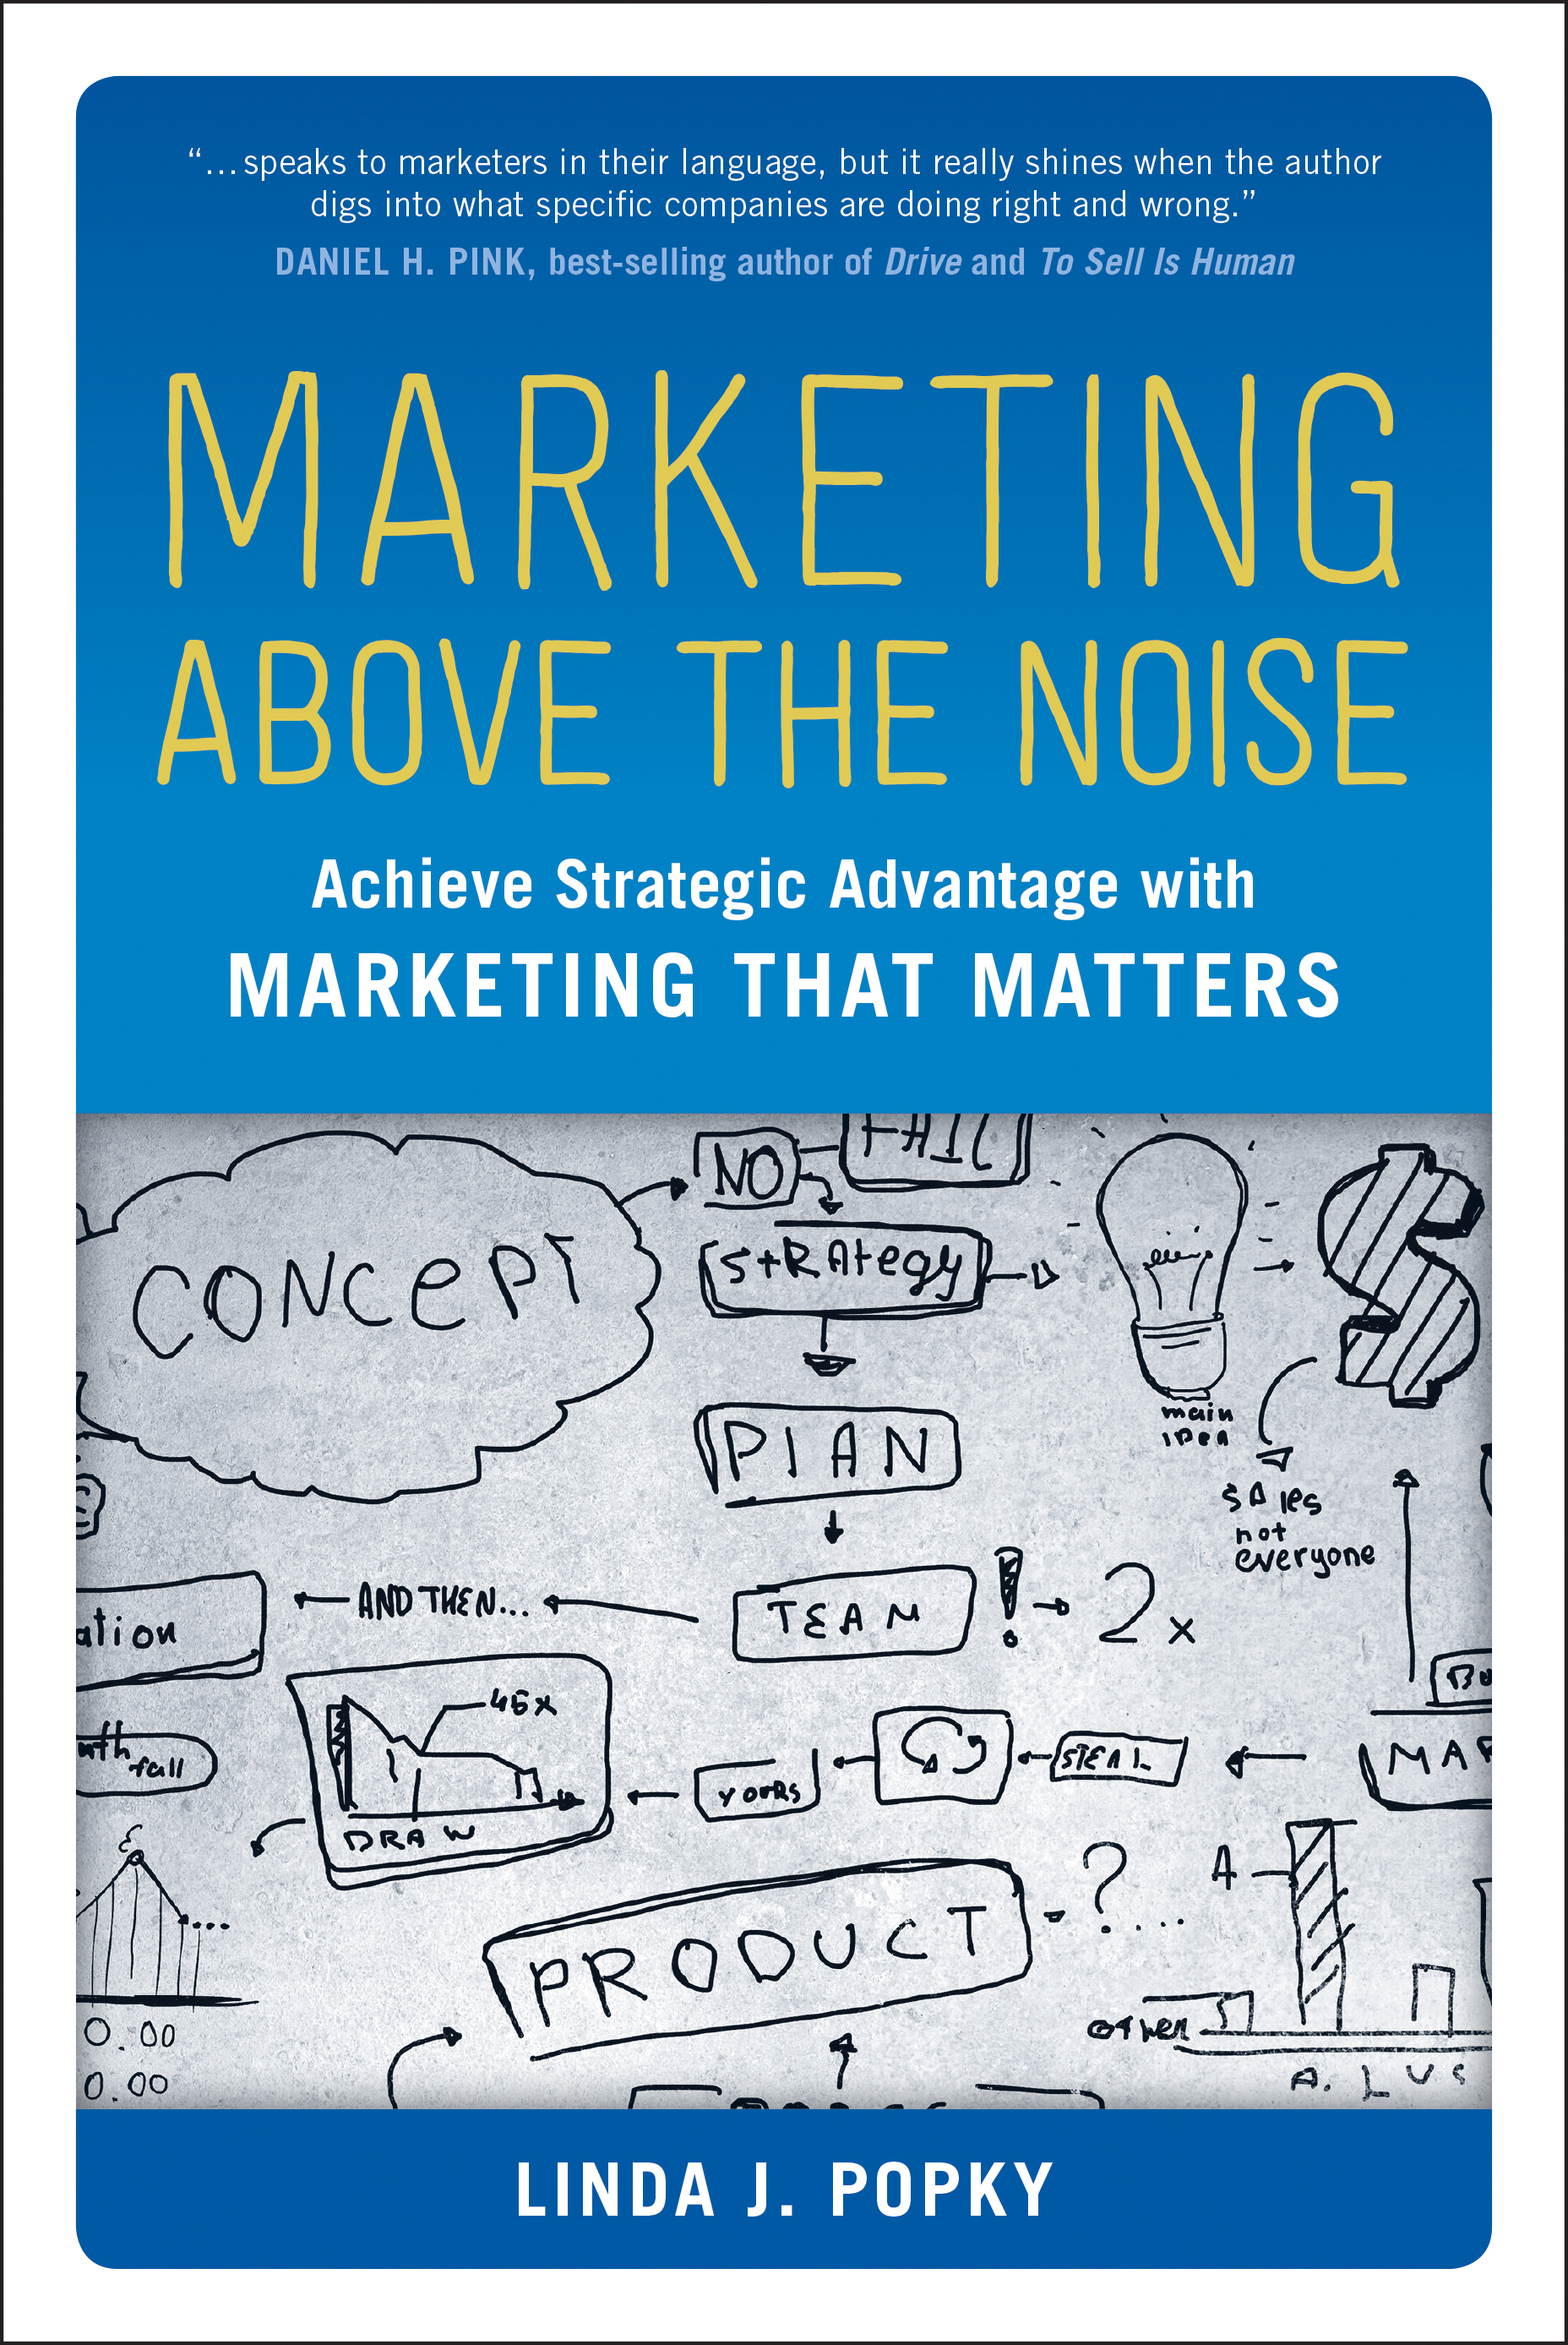 Marketing Above the Noise: Achieve Strategic Advantage with Marketing that Matters